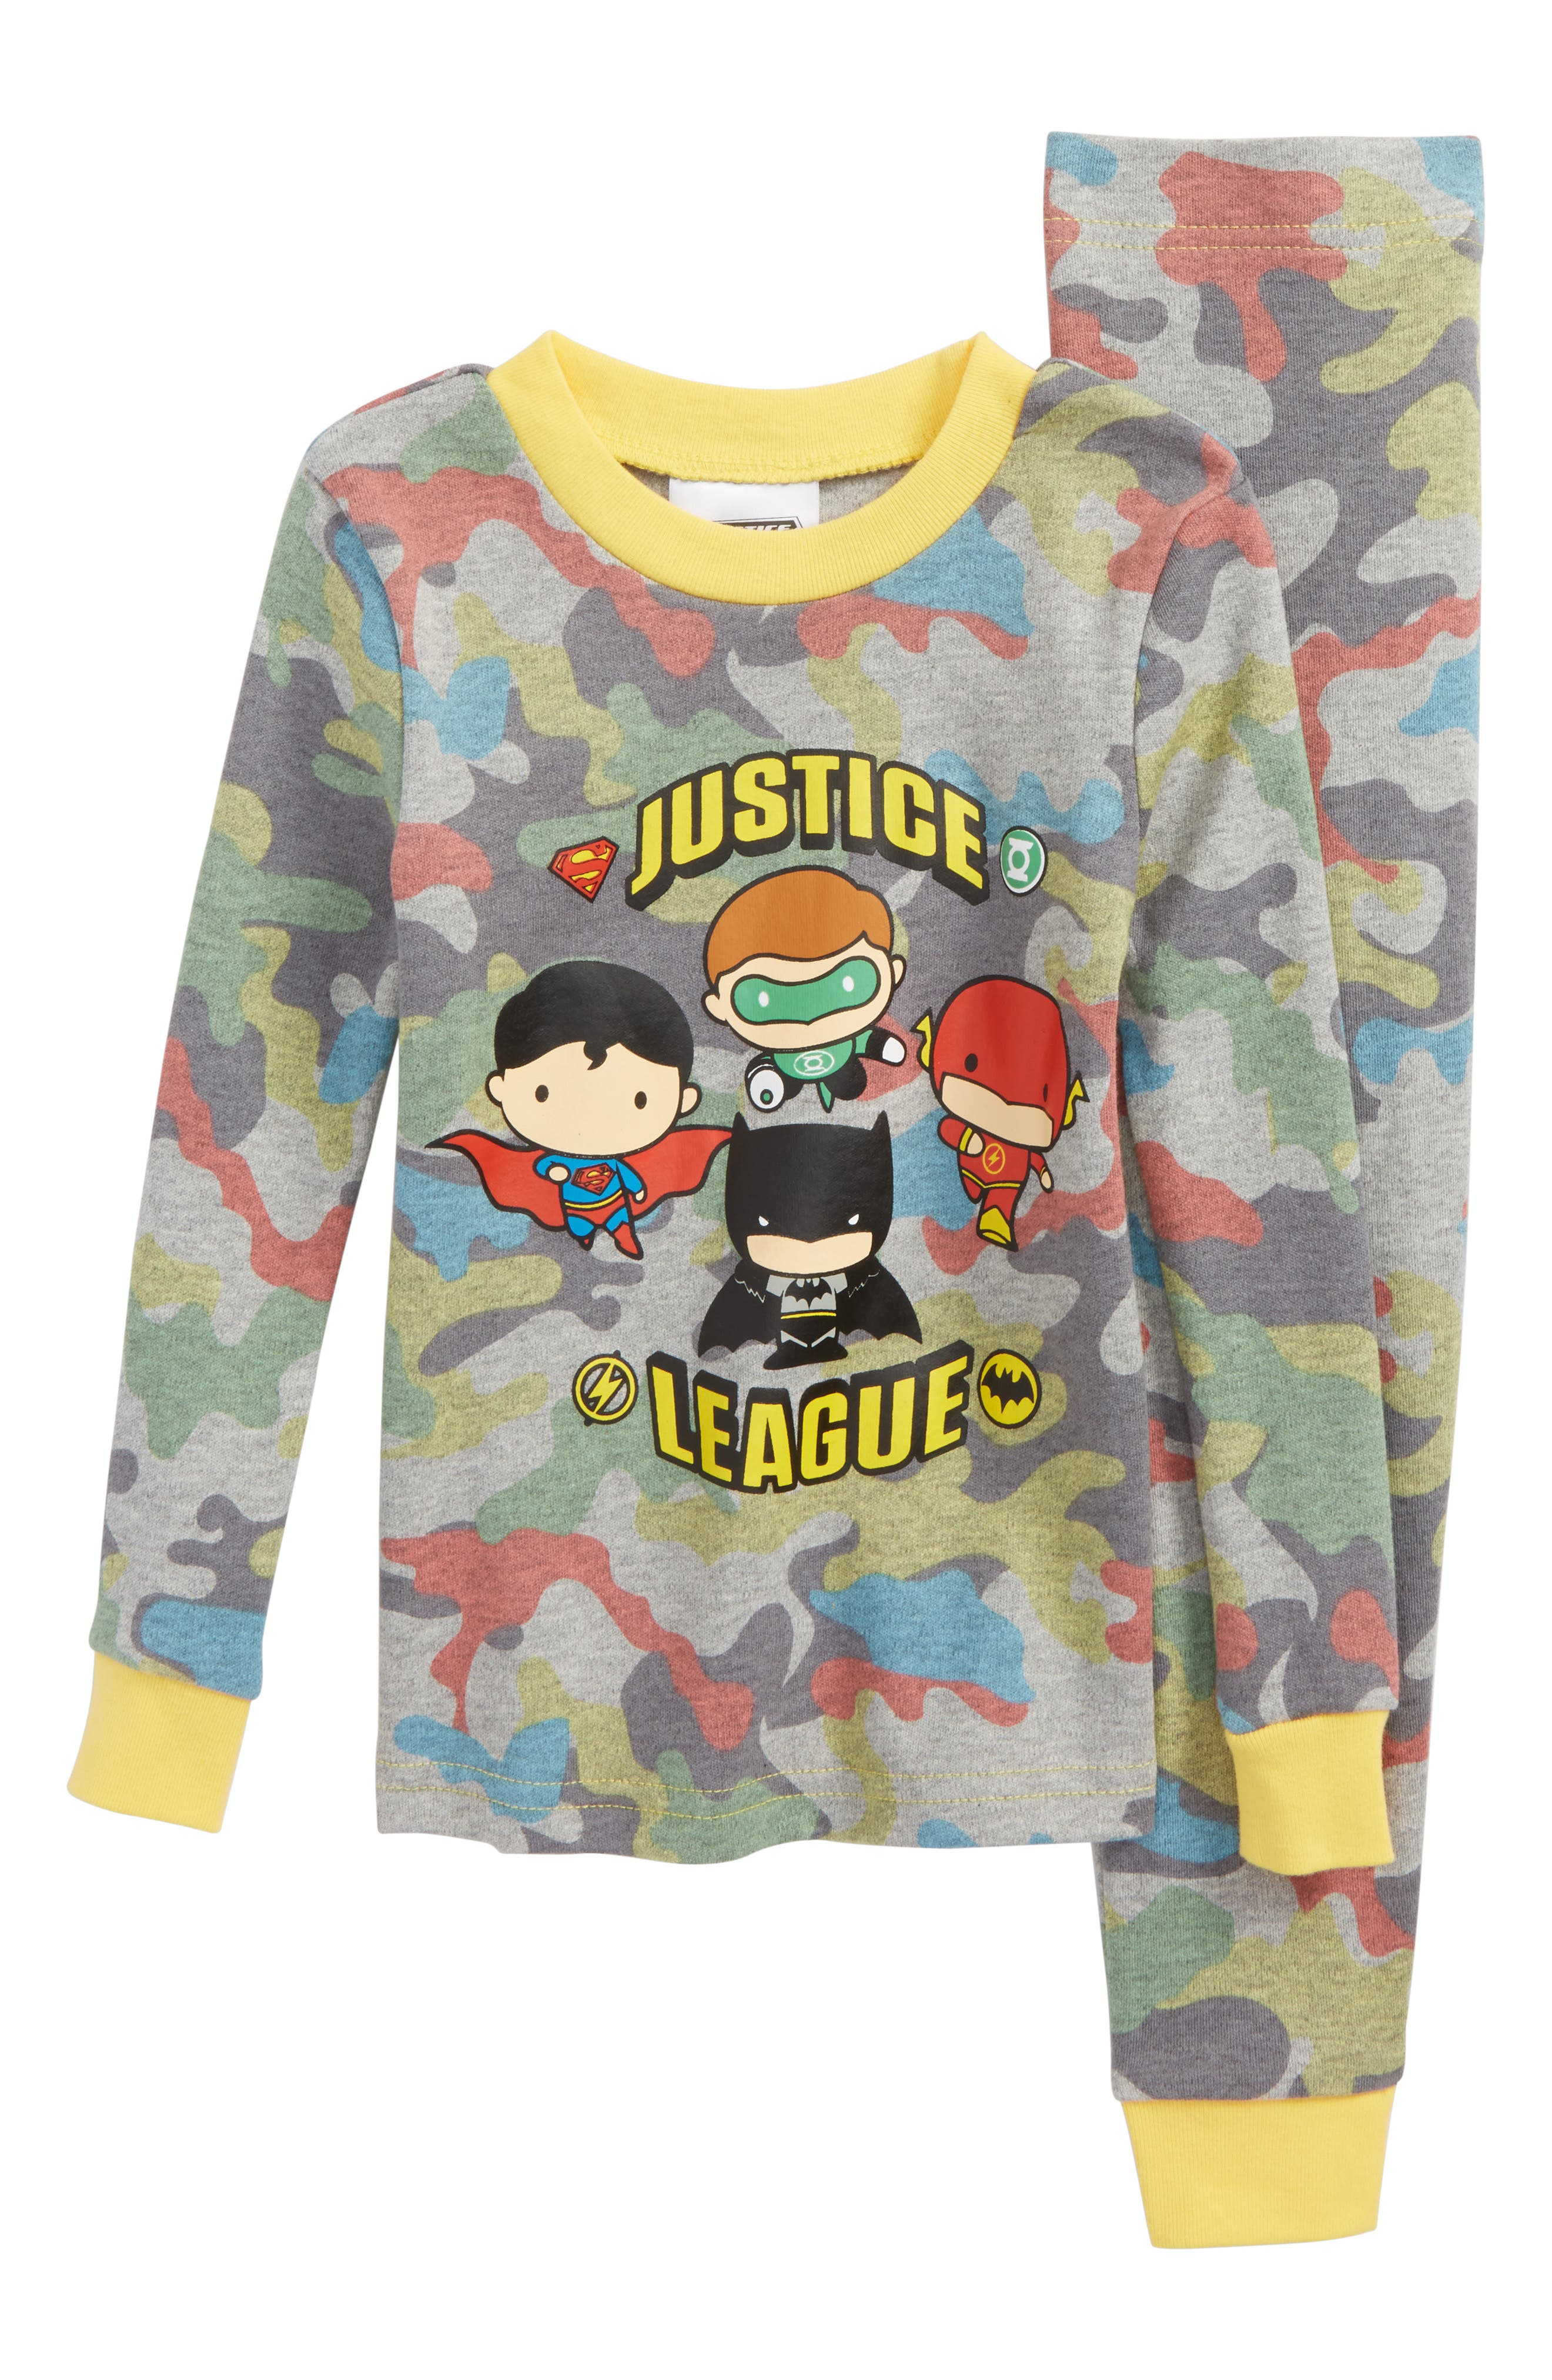 Main Image - Warner Brothers™ Justice League™ Fitted Two-Piece Pajamas Set (Toddler Boys, Little Boys & Big Boys)